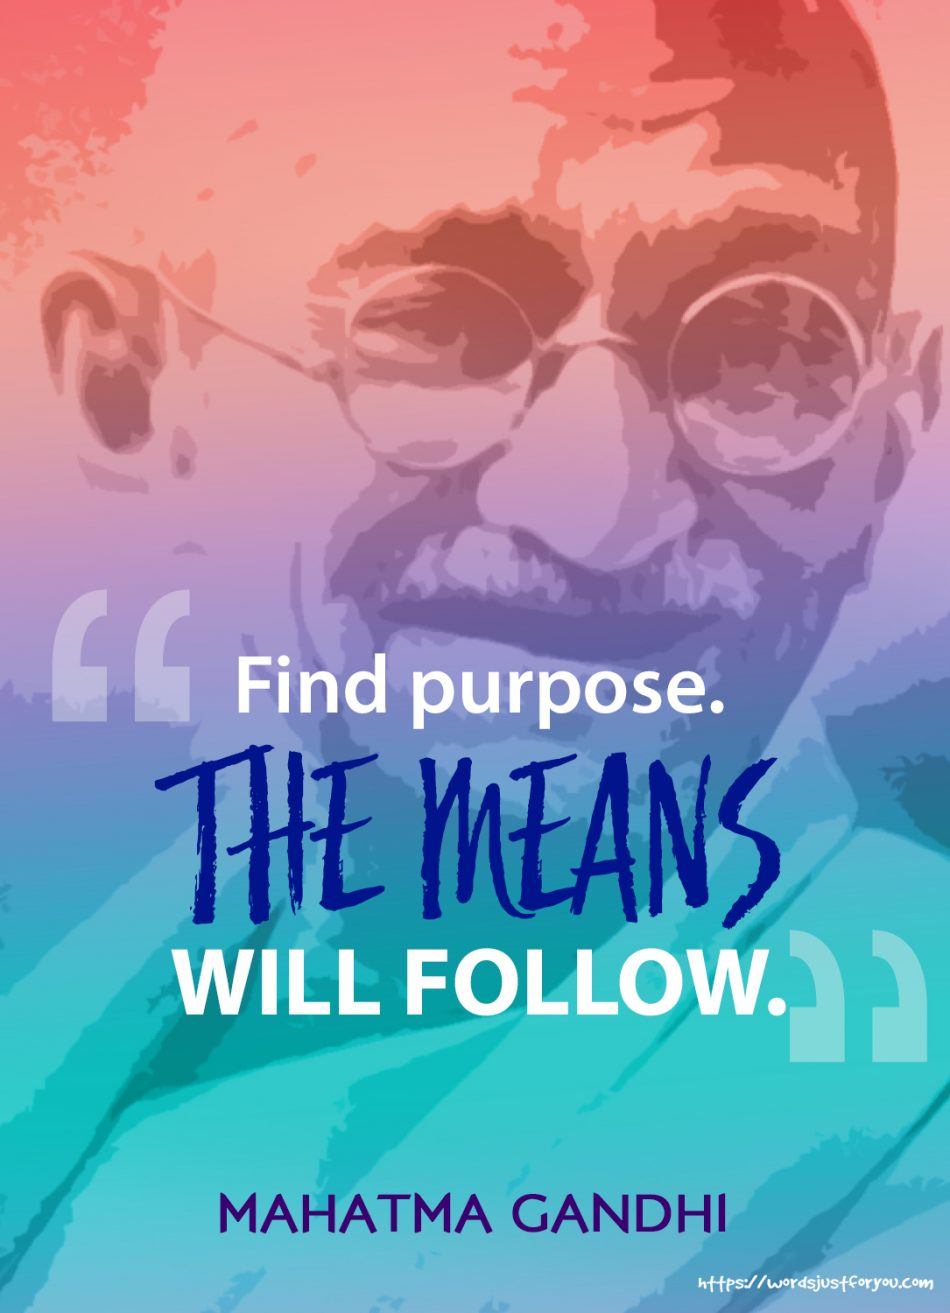 Famous Quote by Mahatma Gandhi